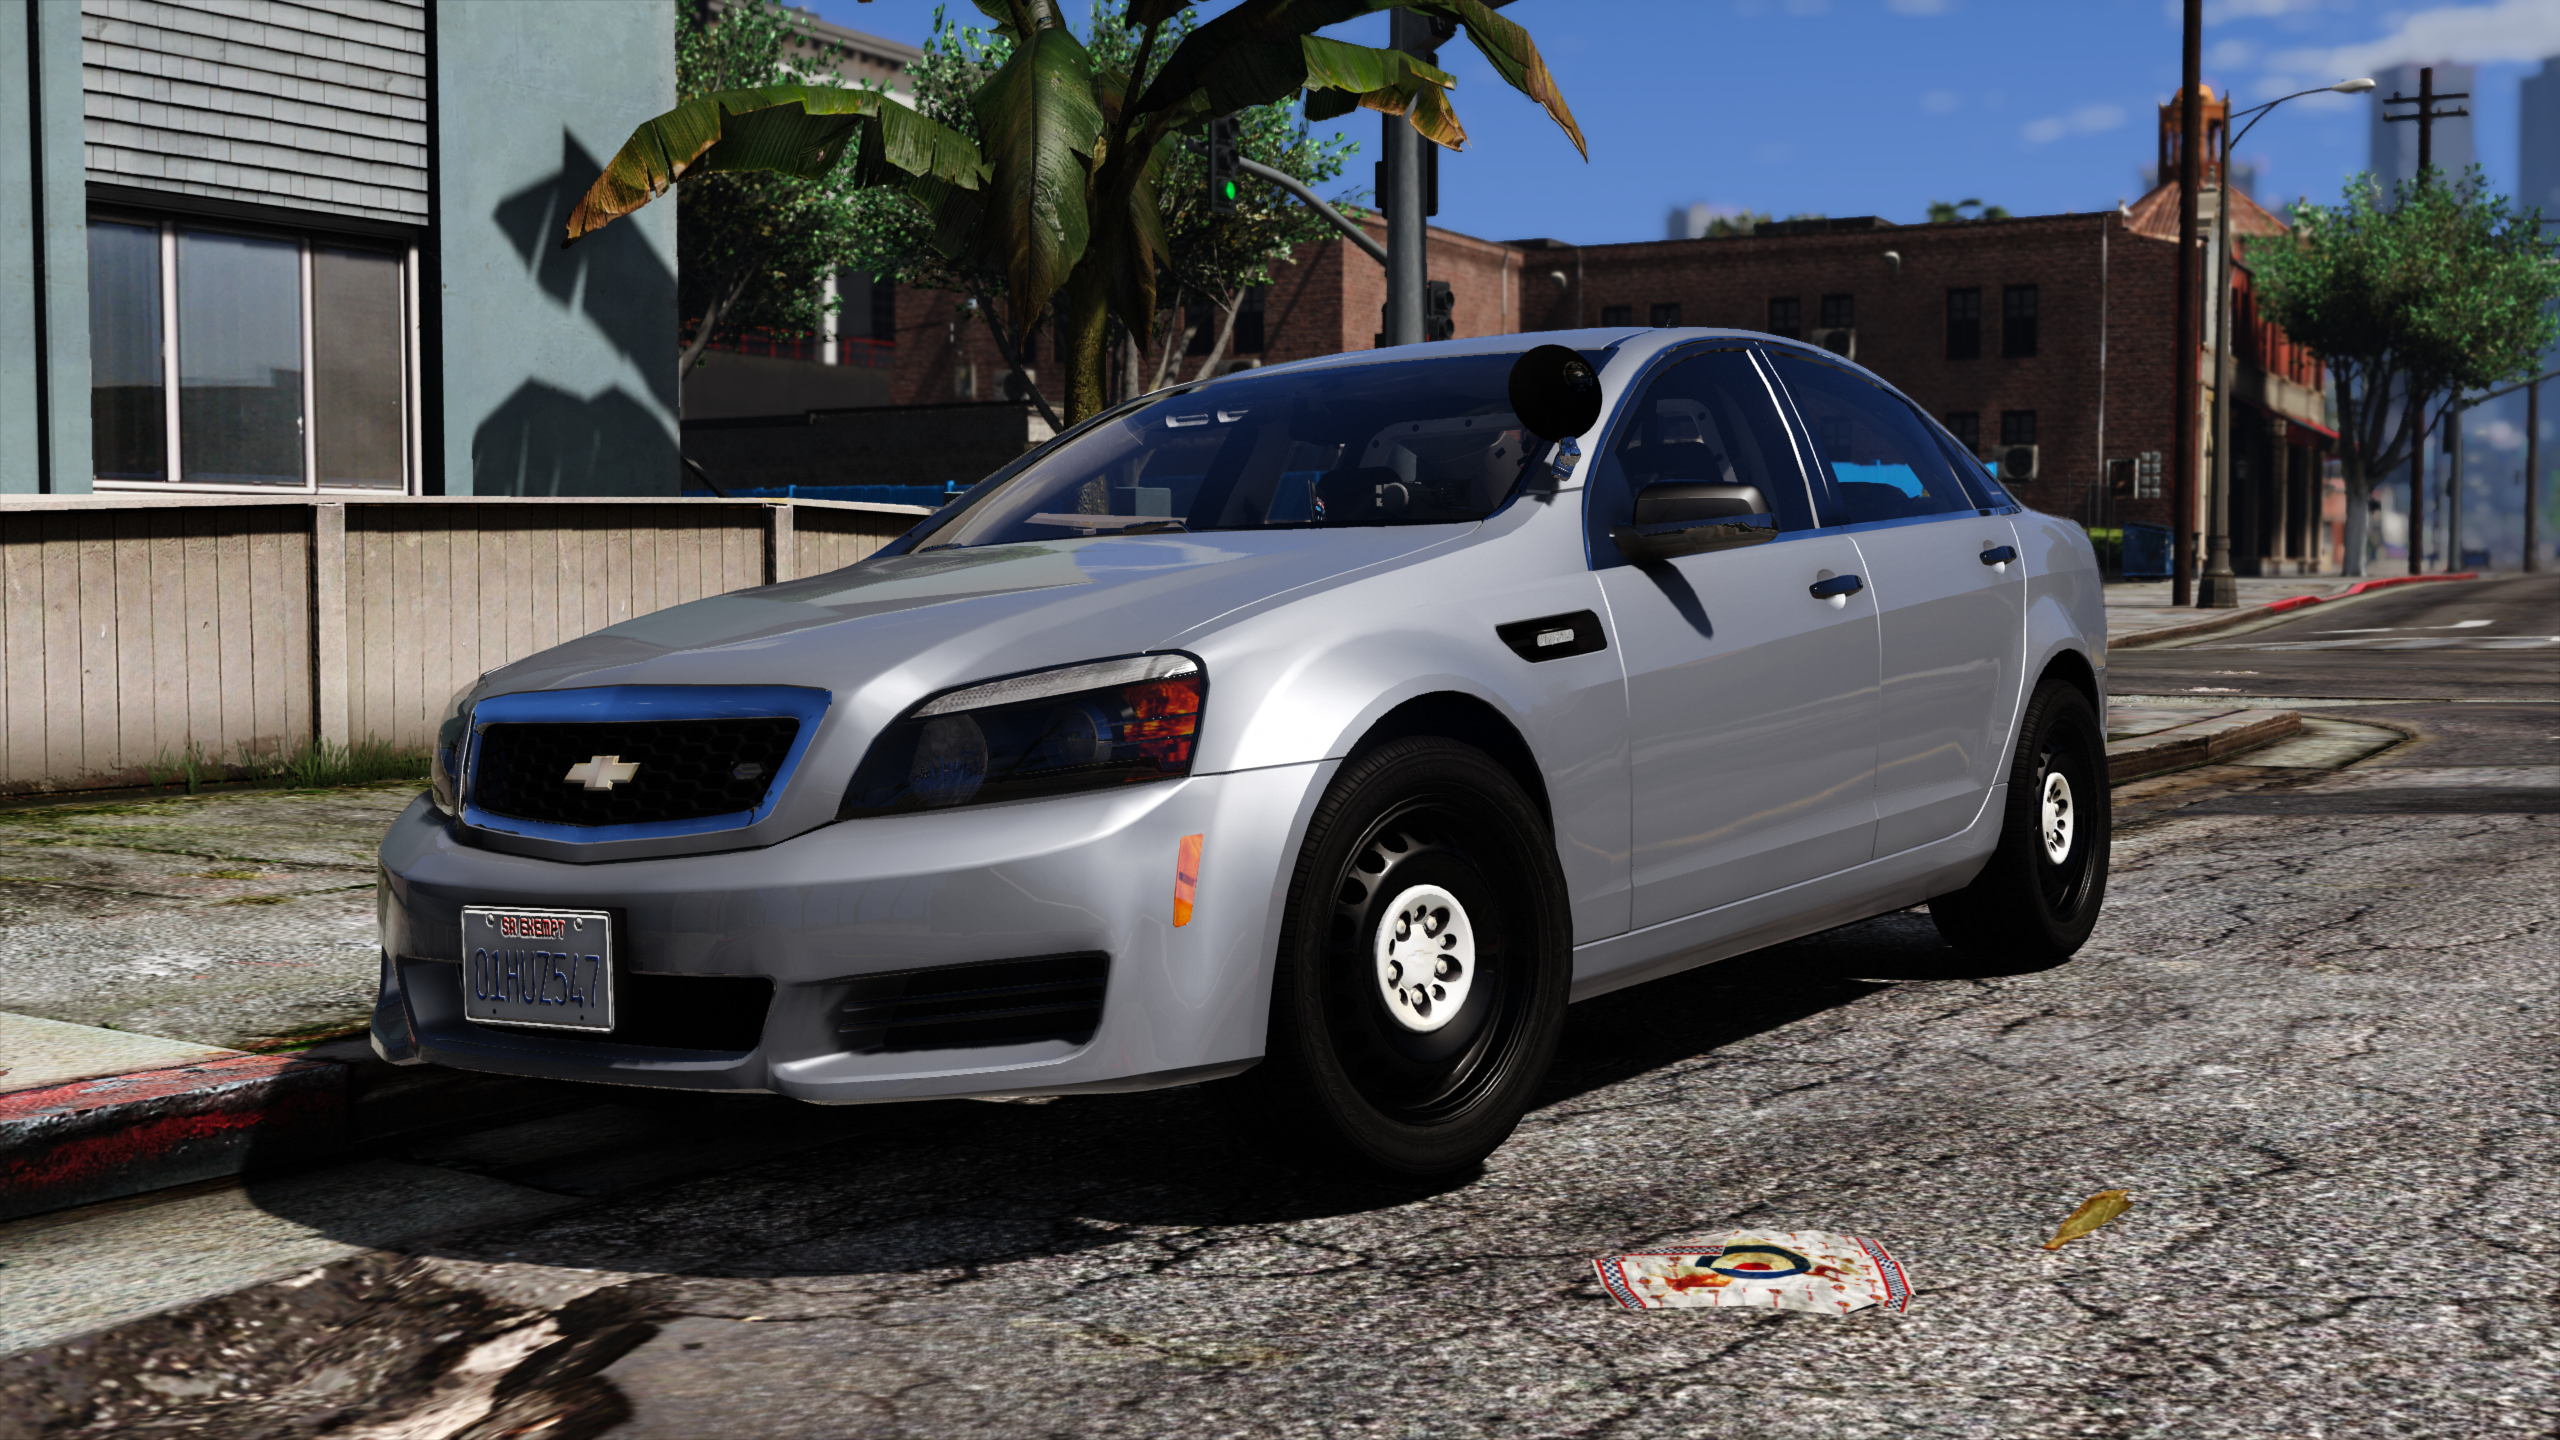 els 2014 chevrolet caprice ppv 9c3 unmarked police gtapolicemods els 2014 chevrolet caprice ppv 9c3